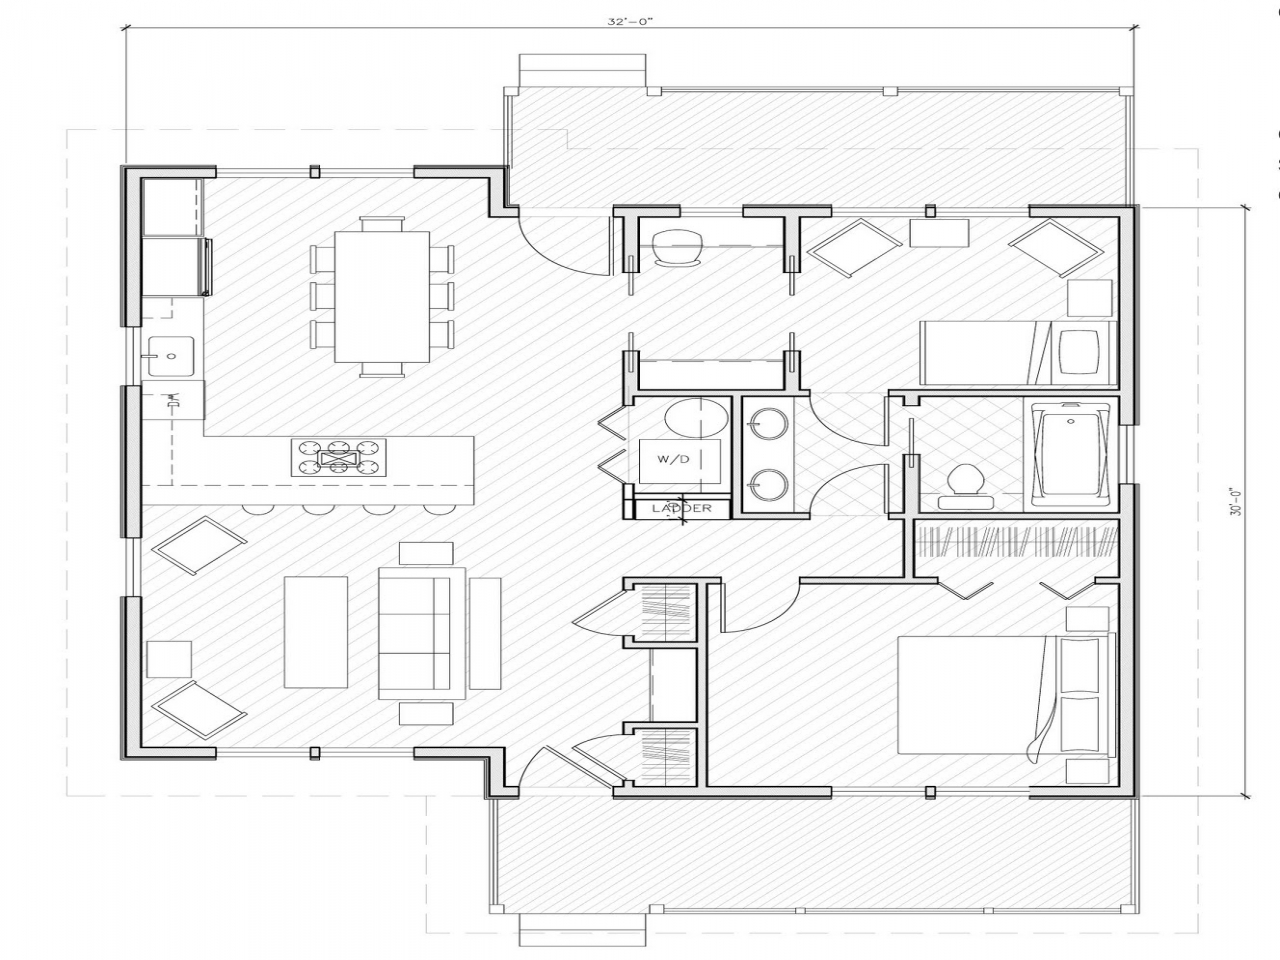 house plans under 1000 sq ft small house plans under 1000 sq ft simple small house floor plans 1000 square feet house plans 1297